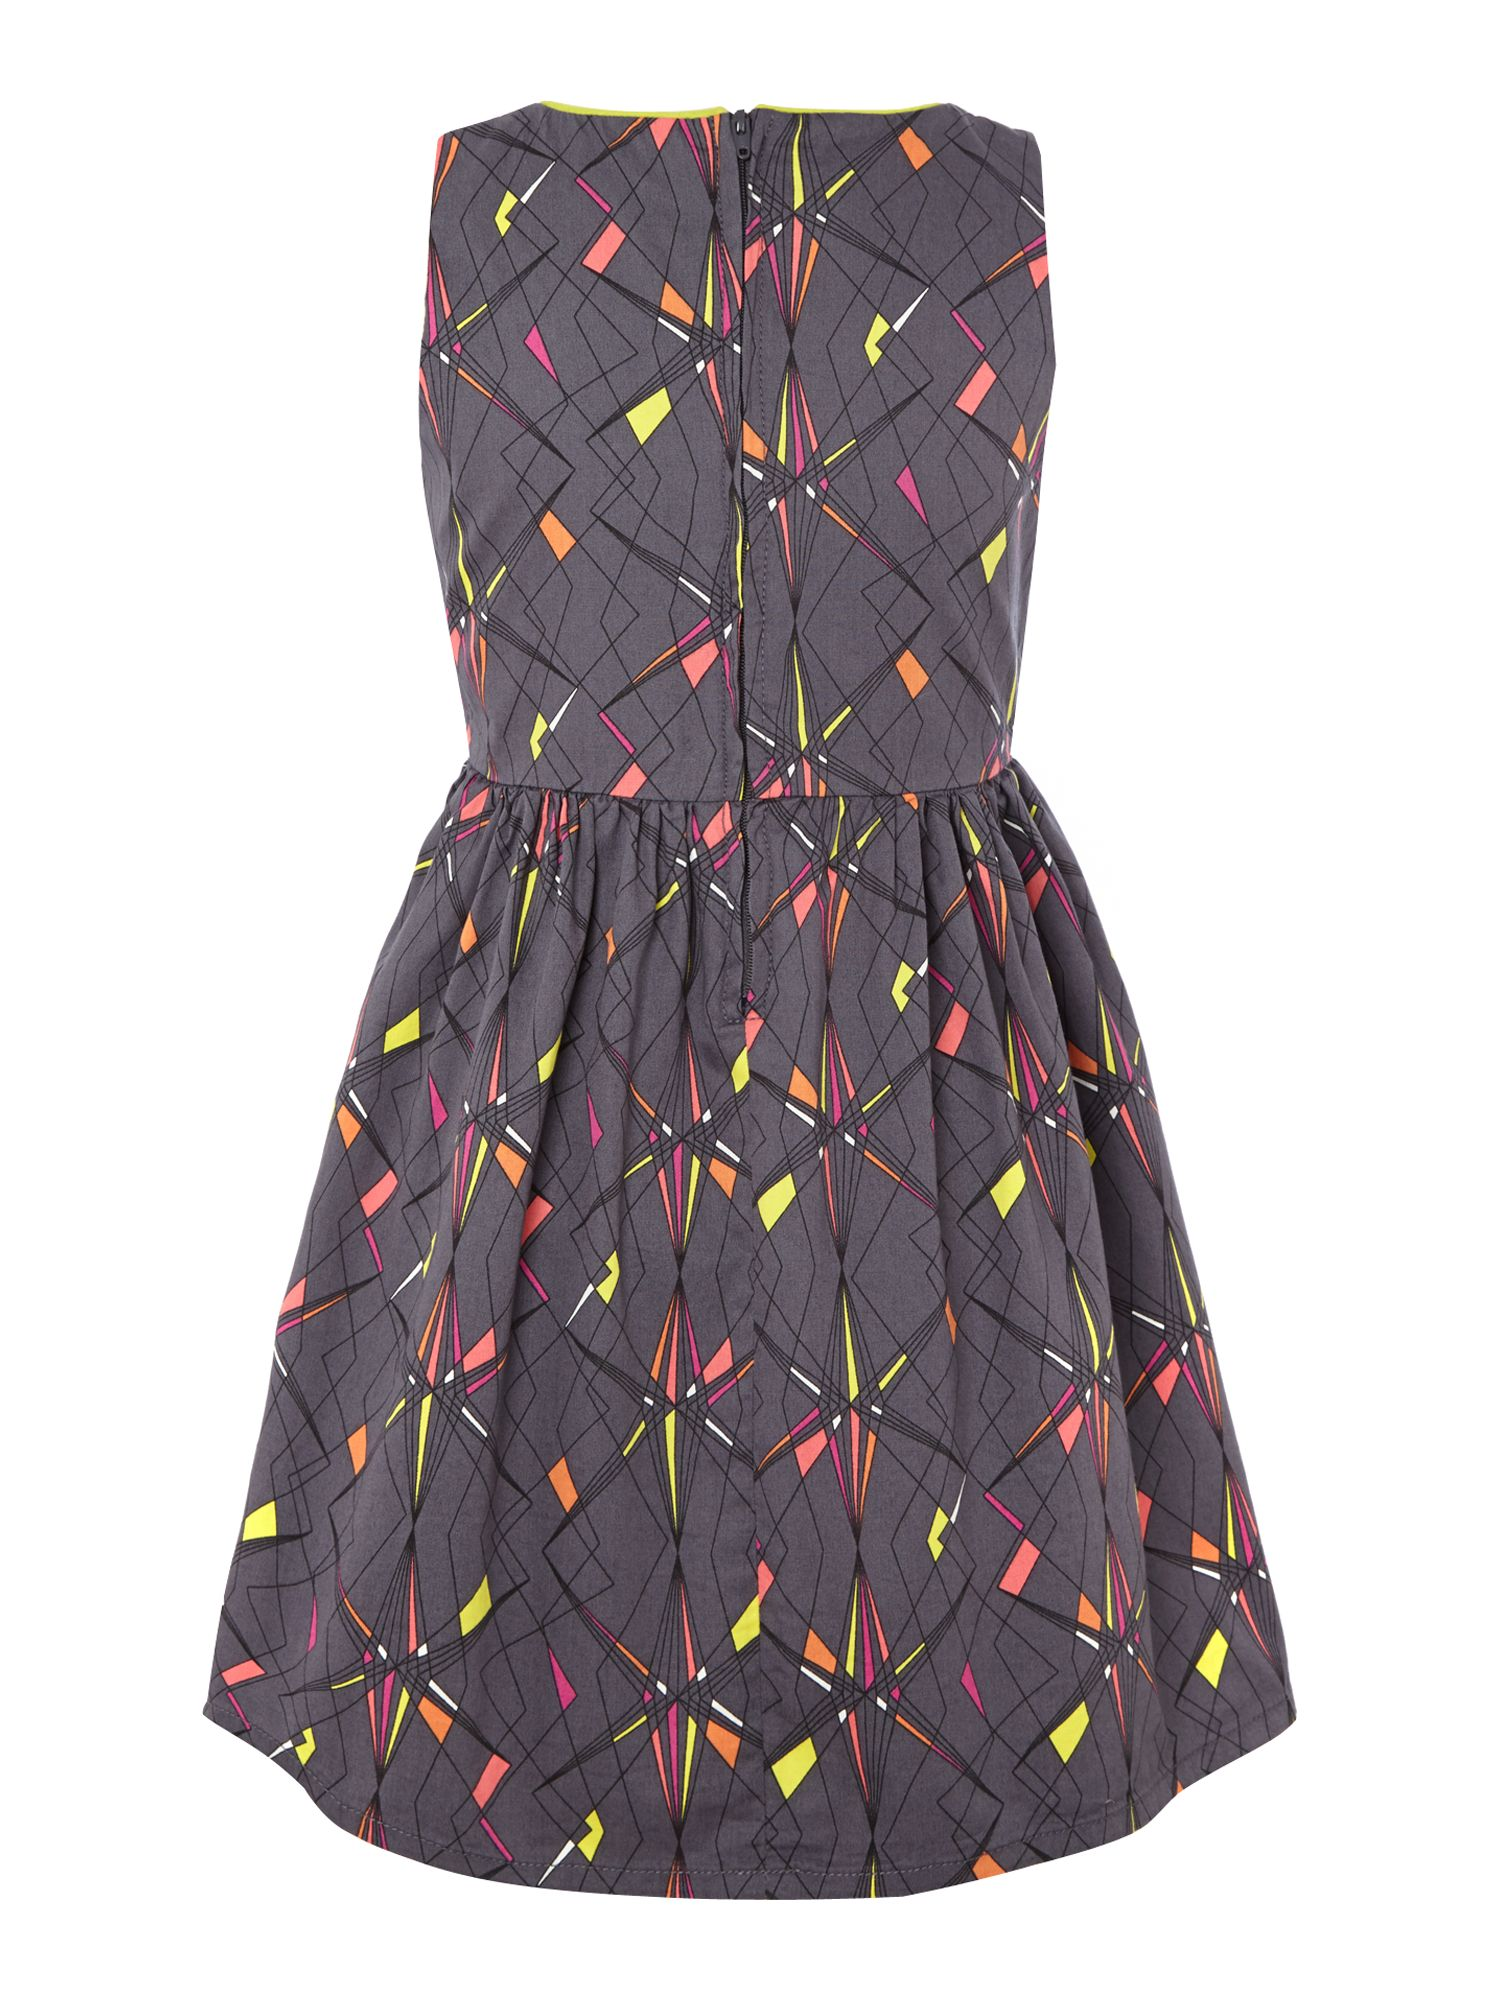 Girls graphic print dress